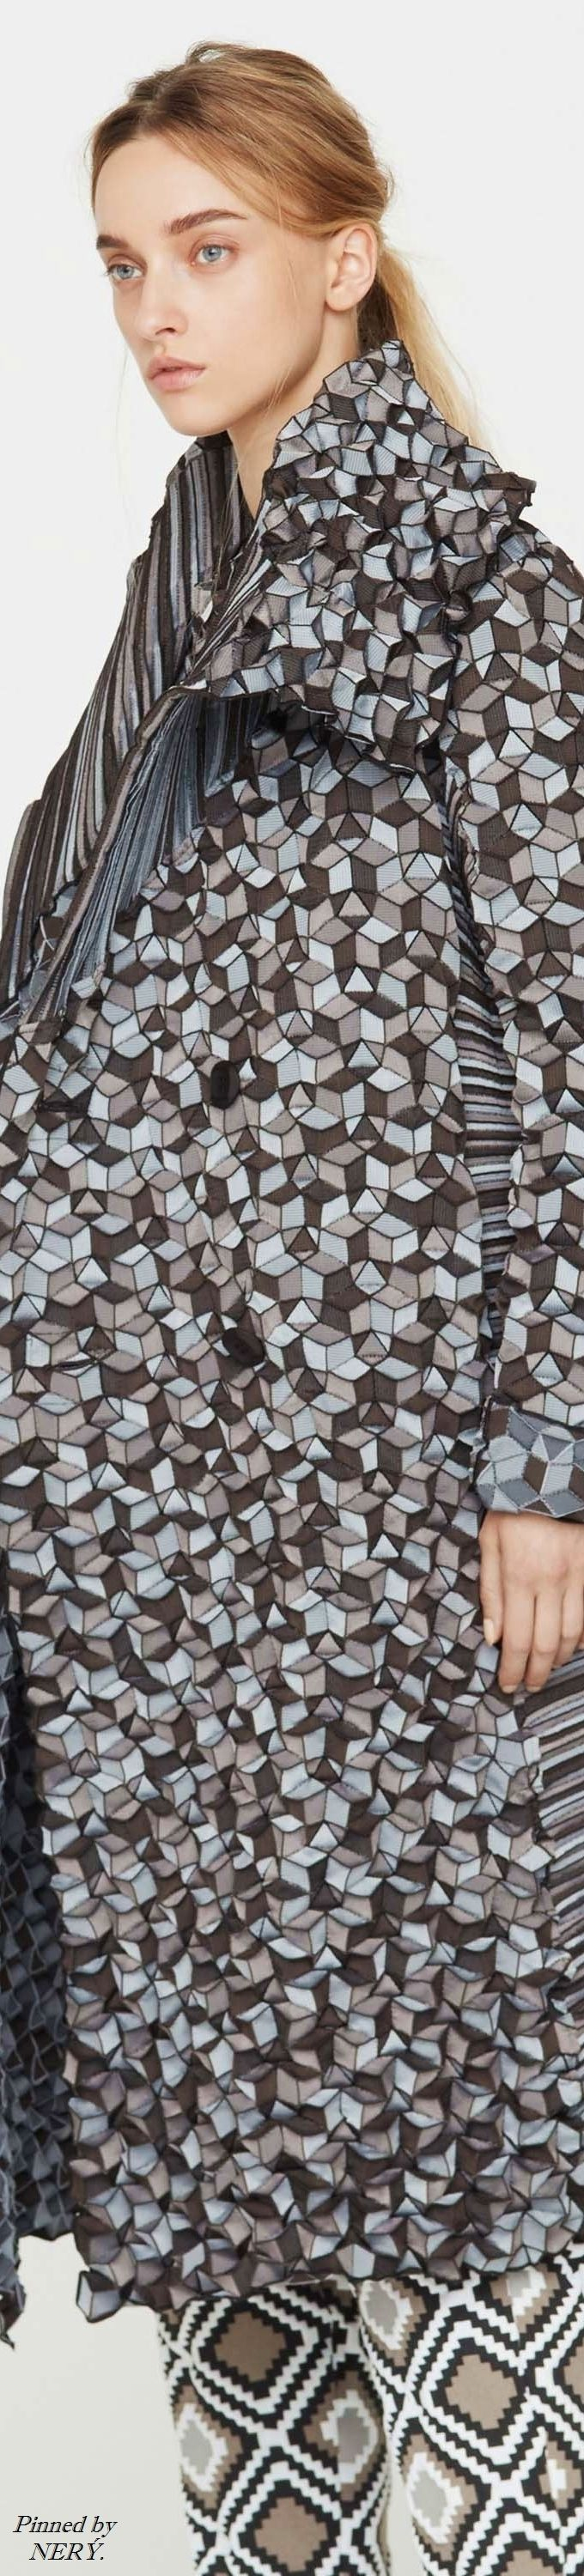 86 best images about ISSEY MIYAKE Couture on Pinterest  ~ Issey Miyake Fleur De Bois